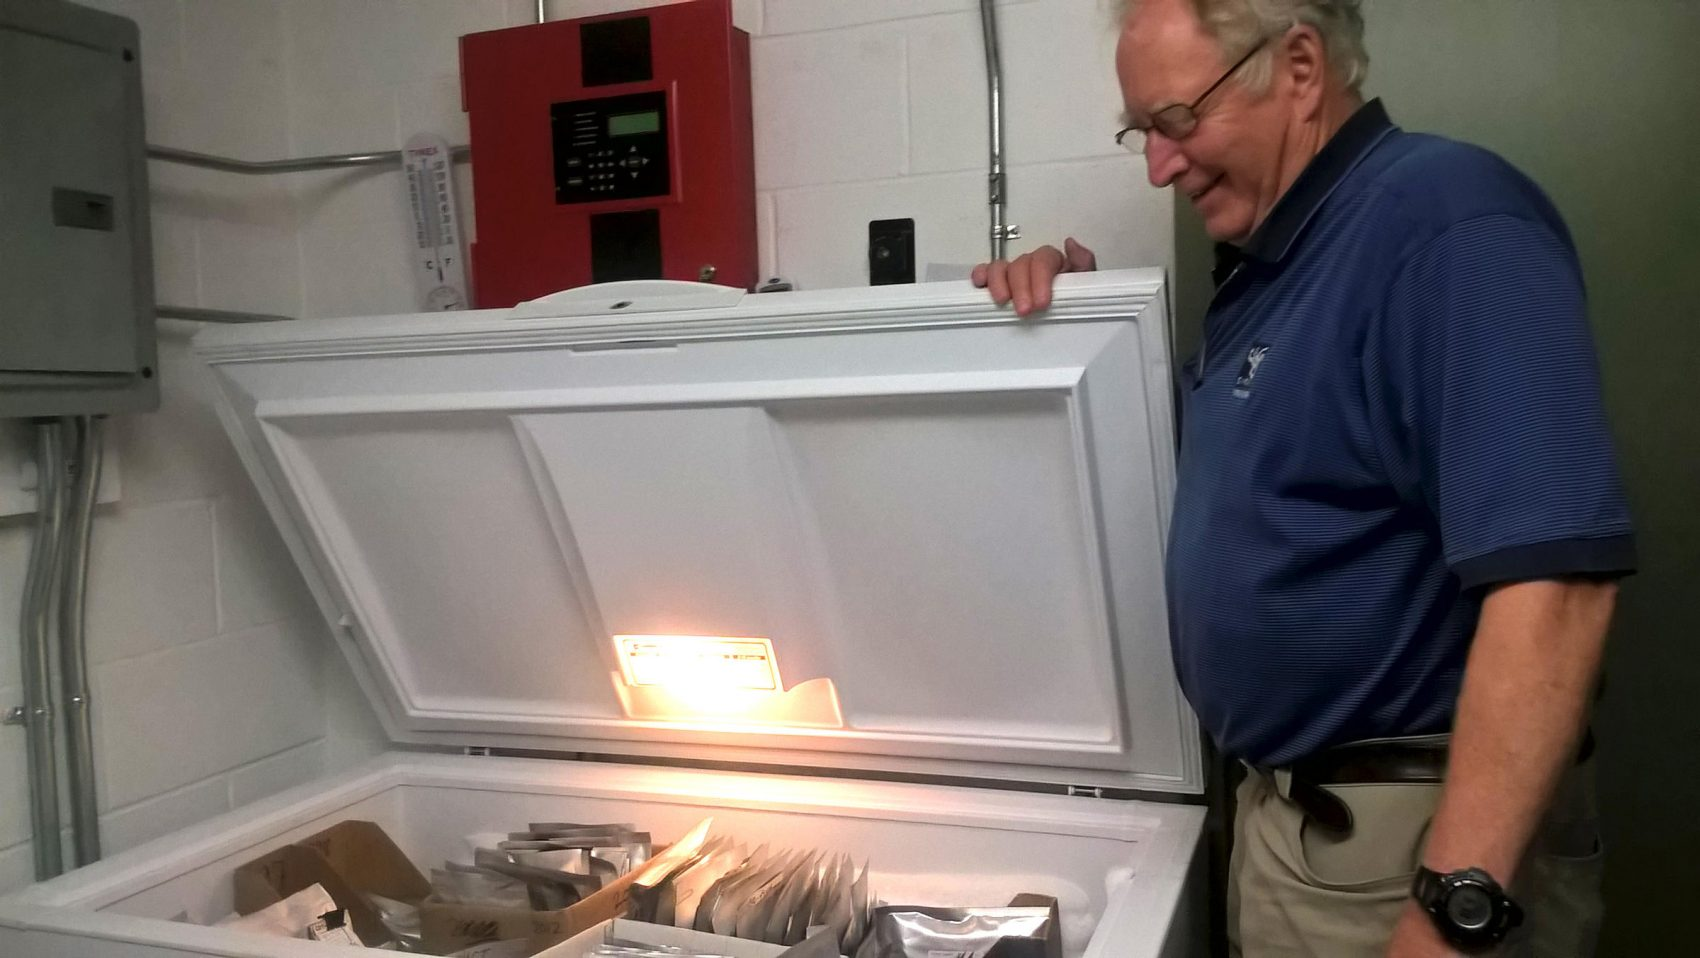 """New England Wildflower Society's Bill Brumback, opening the freezer that acts as the """"seed vault,"""" in Framingham, Mass. (Jill Kaufman/NEPR)"""